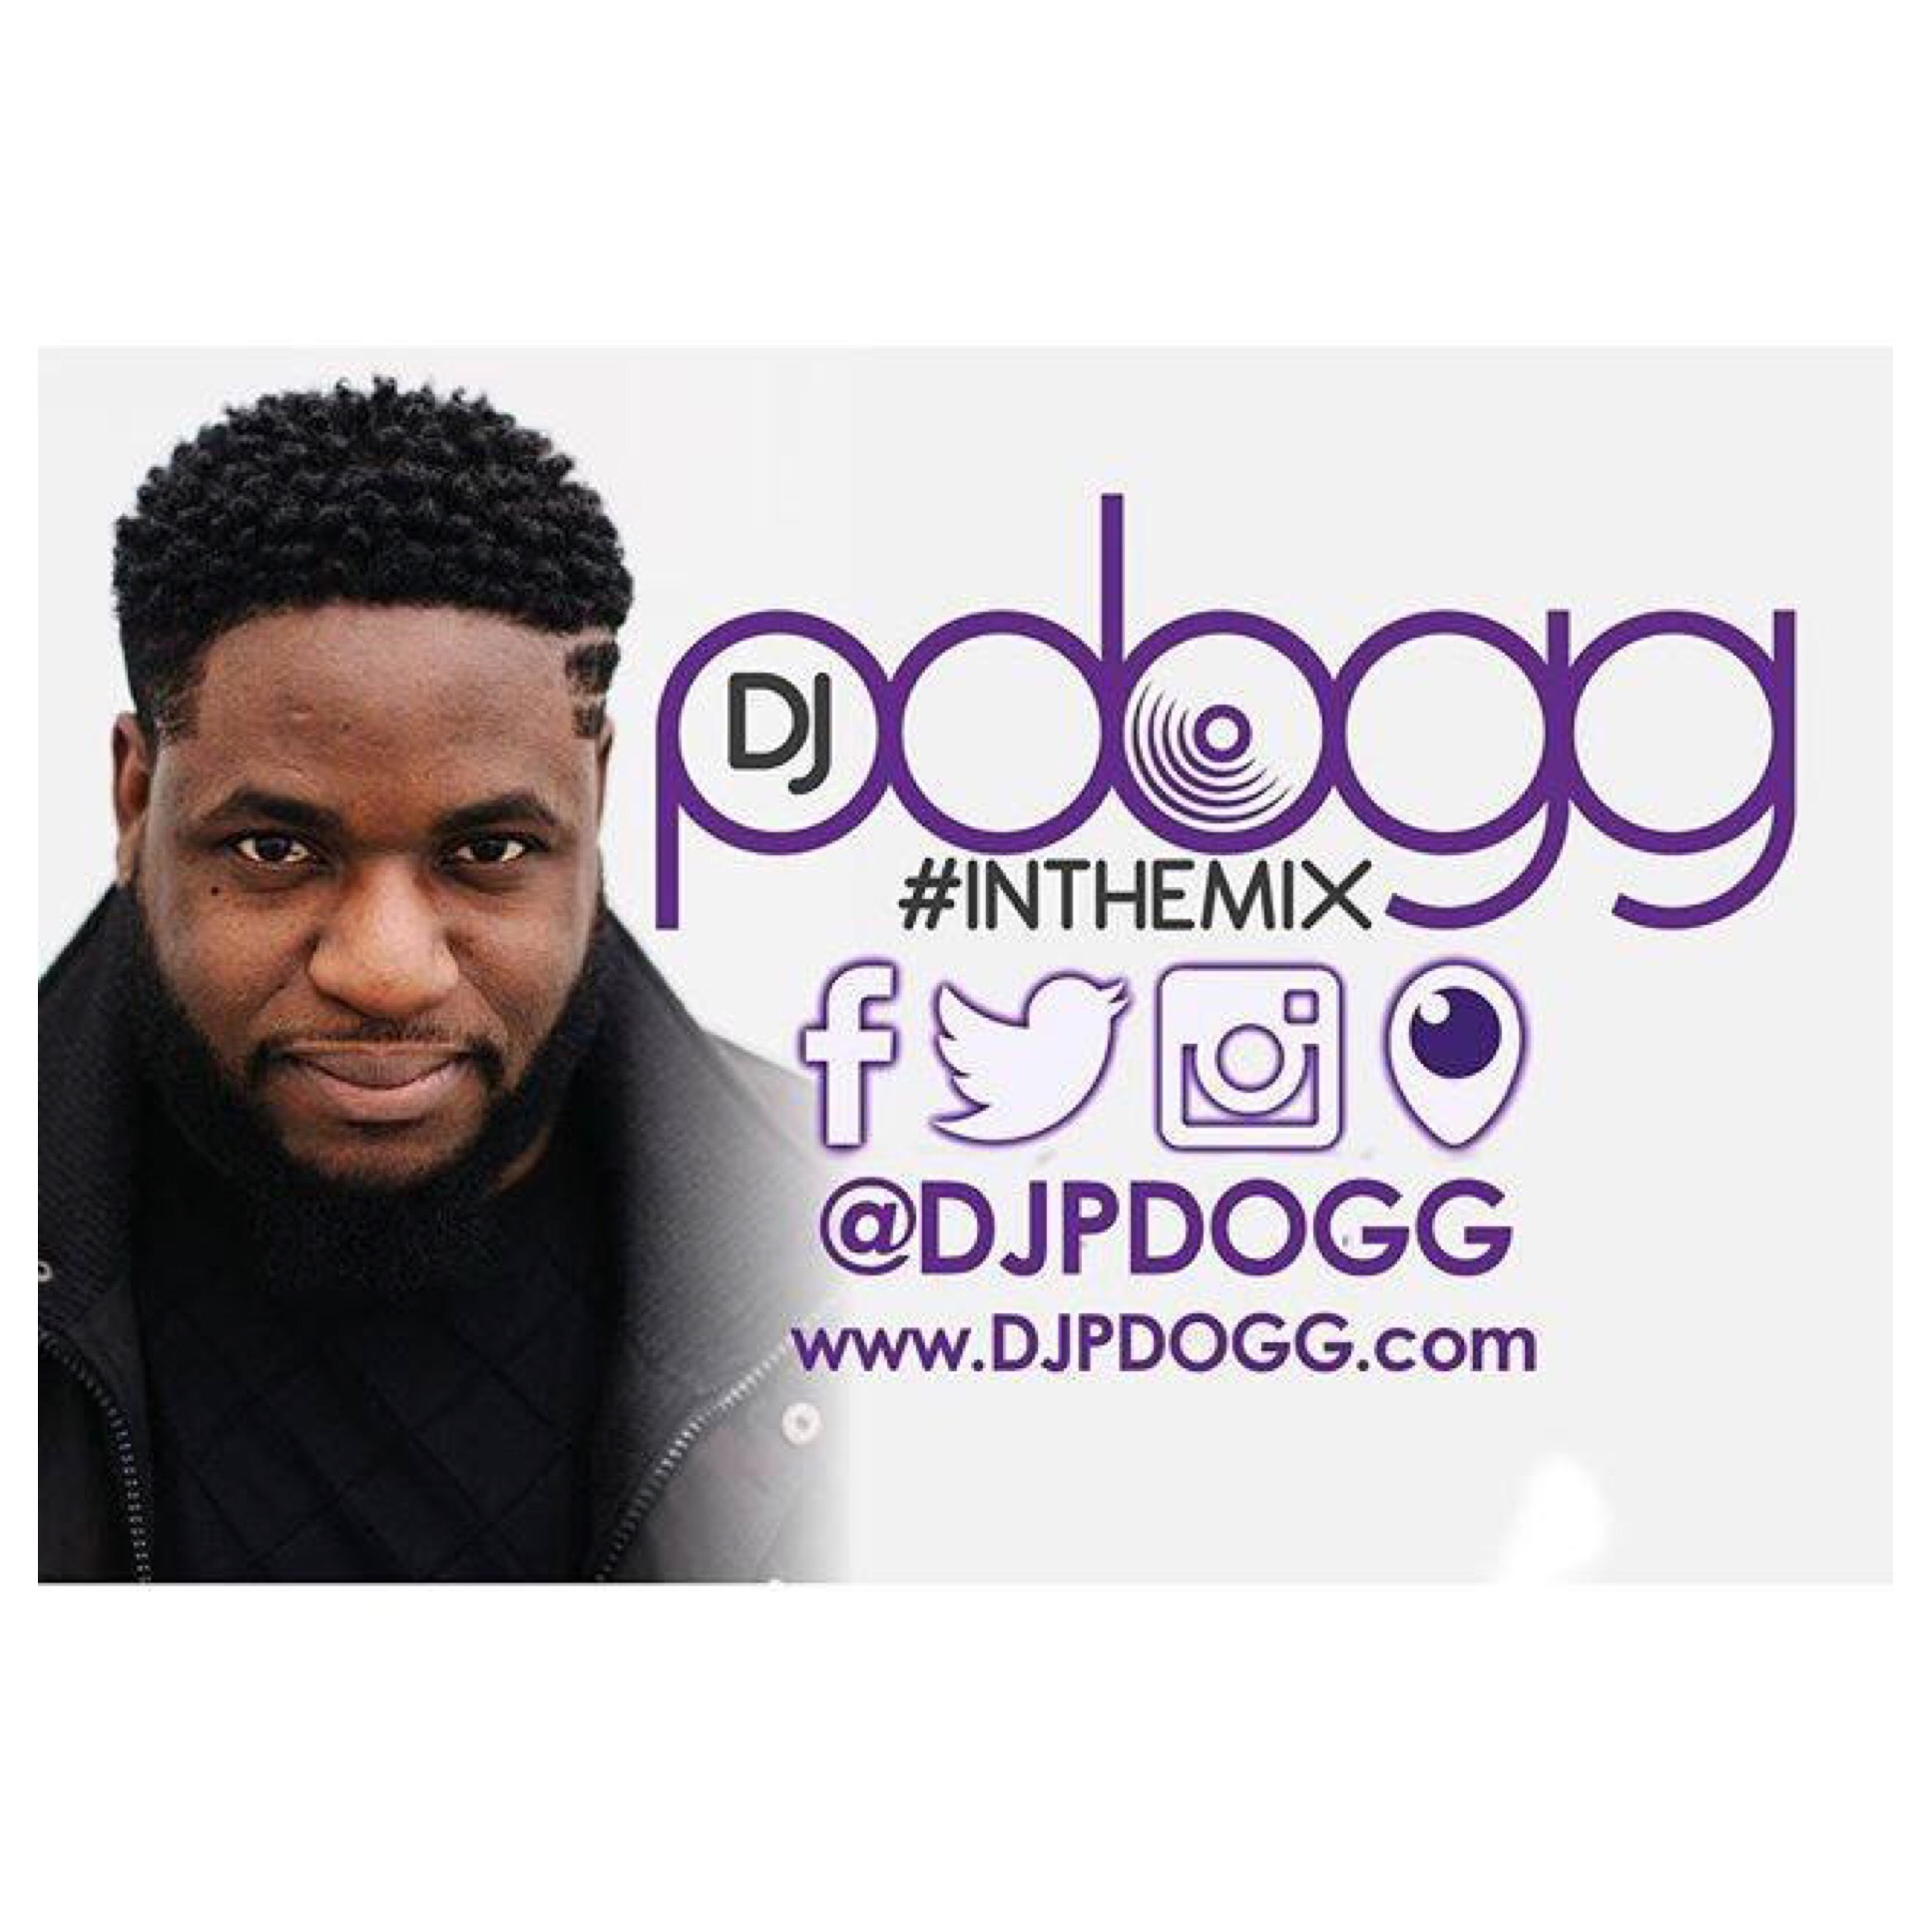 @Djpdogg #Inthemix Roundtable Episode 07